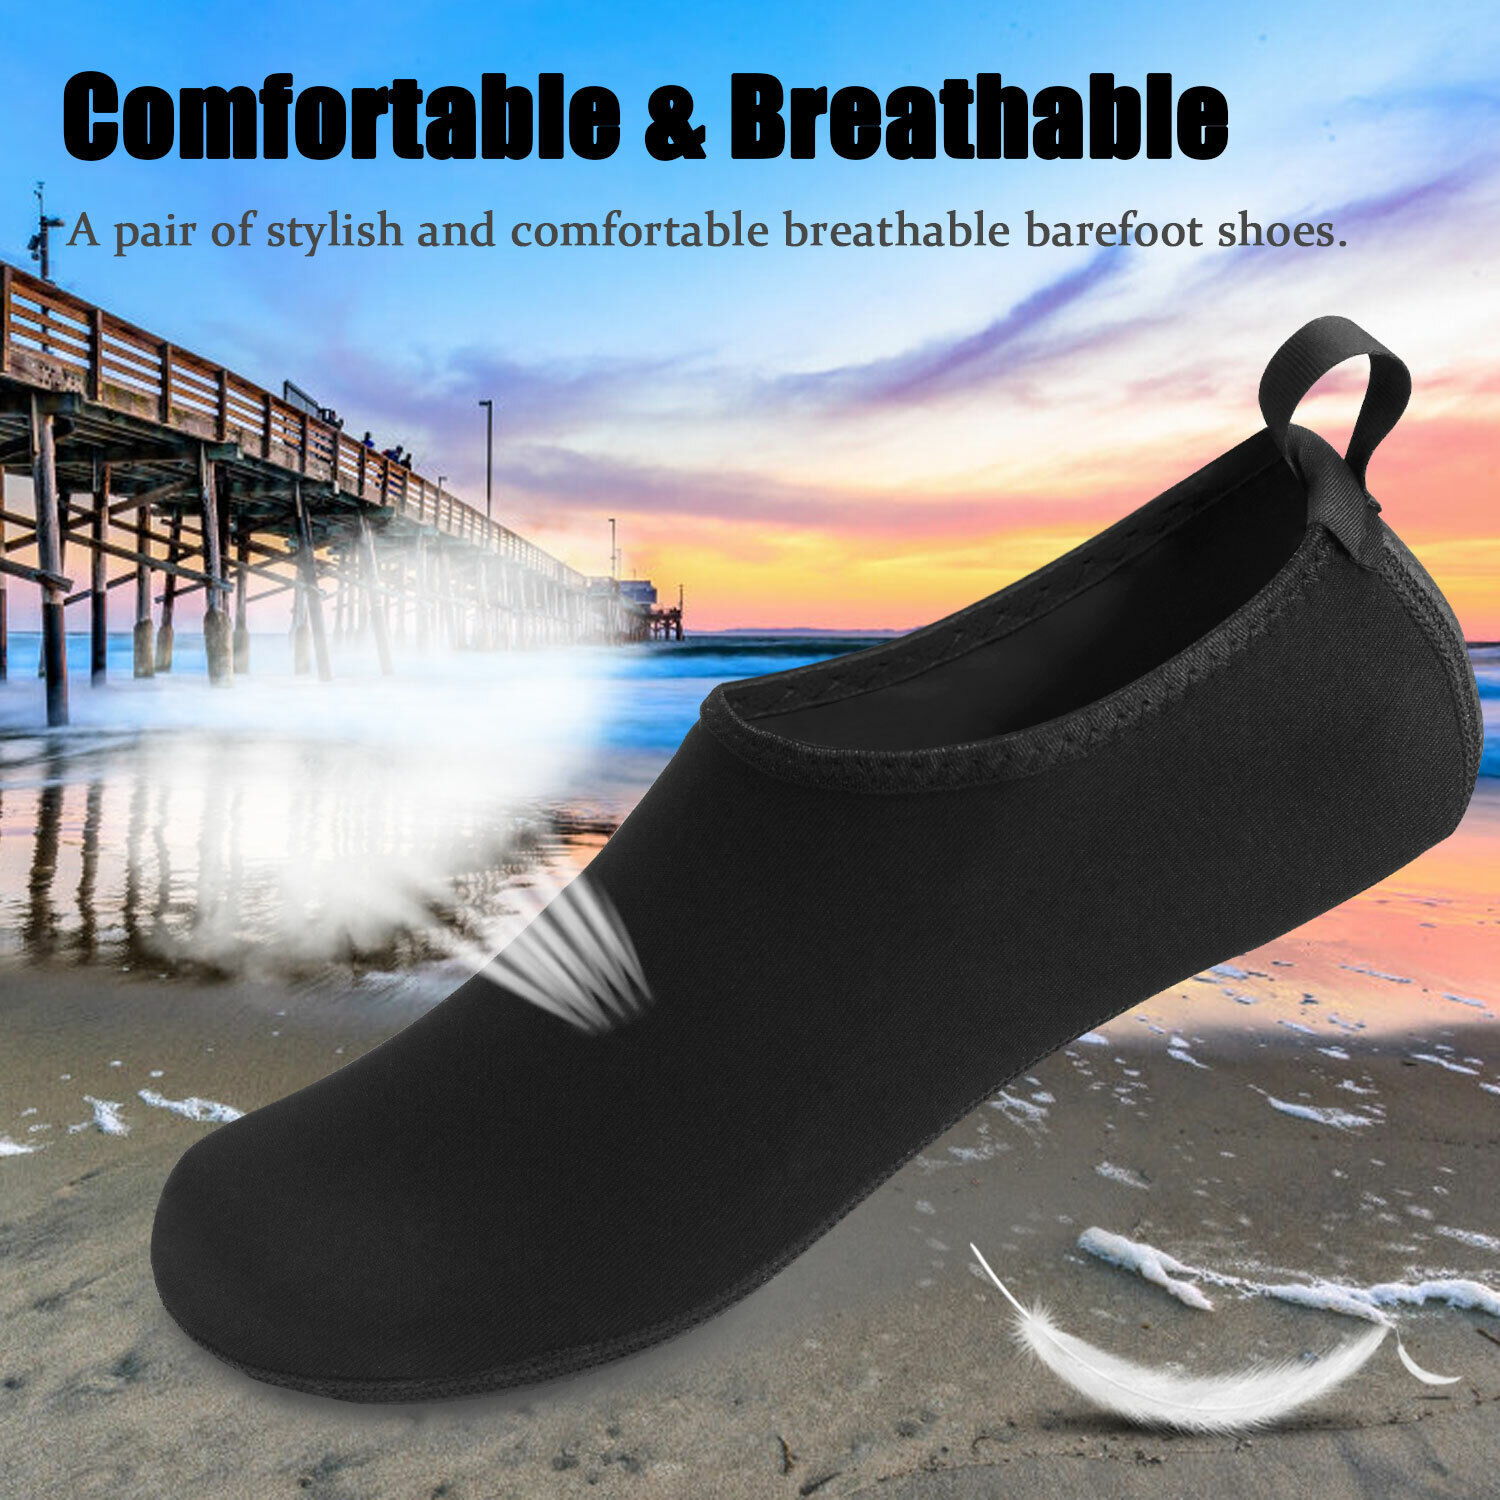 Men Women Water Shoes Barefoot Quick-Dry Beach Yoga Swim Sports Exercise Socks Athletic Shoes